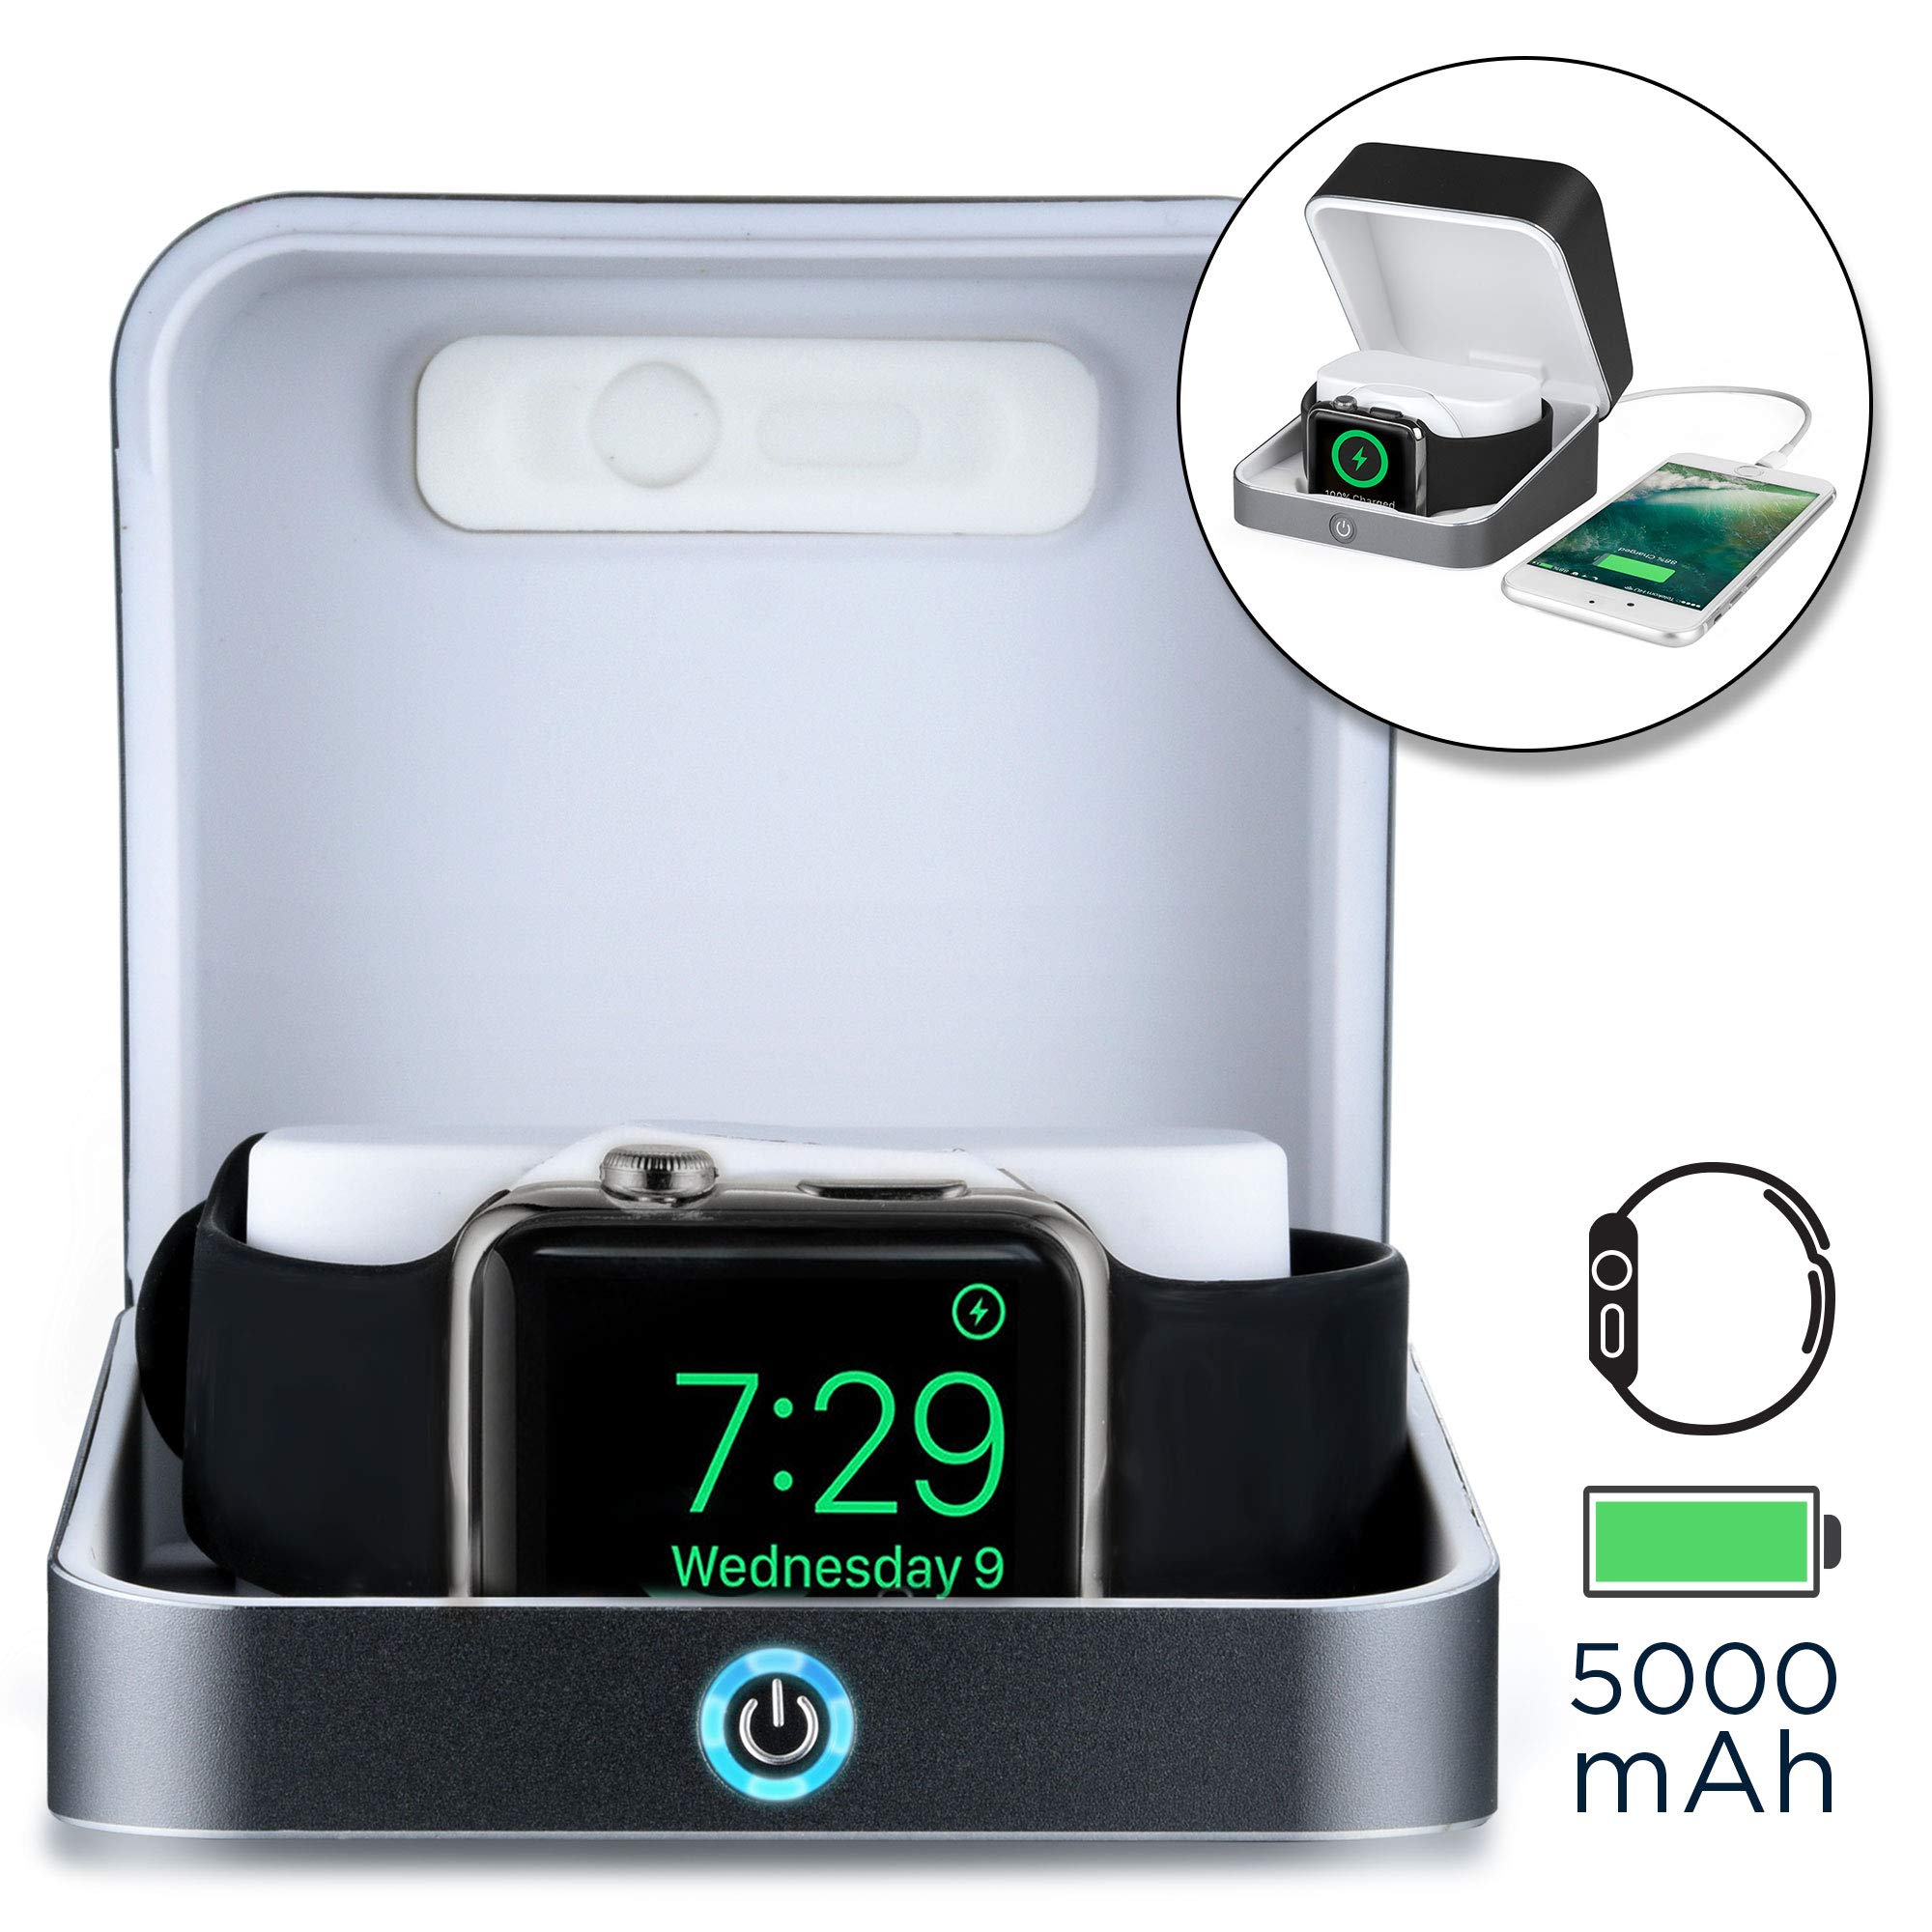 SUMATO WATCHBOX Charger case Compatible Apple Watch 1 2 3 | Charger, Power Bank Works iWatch & iPhone | Travel Box, Charging Station | MFI Certified, 5000mAh, Built-in Cable (Dark Gray)